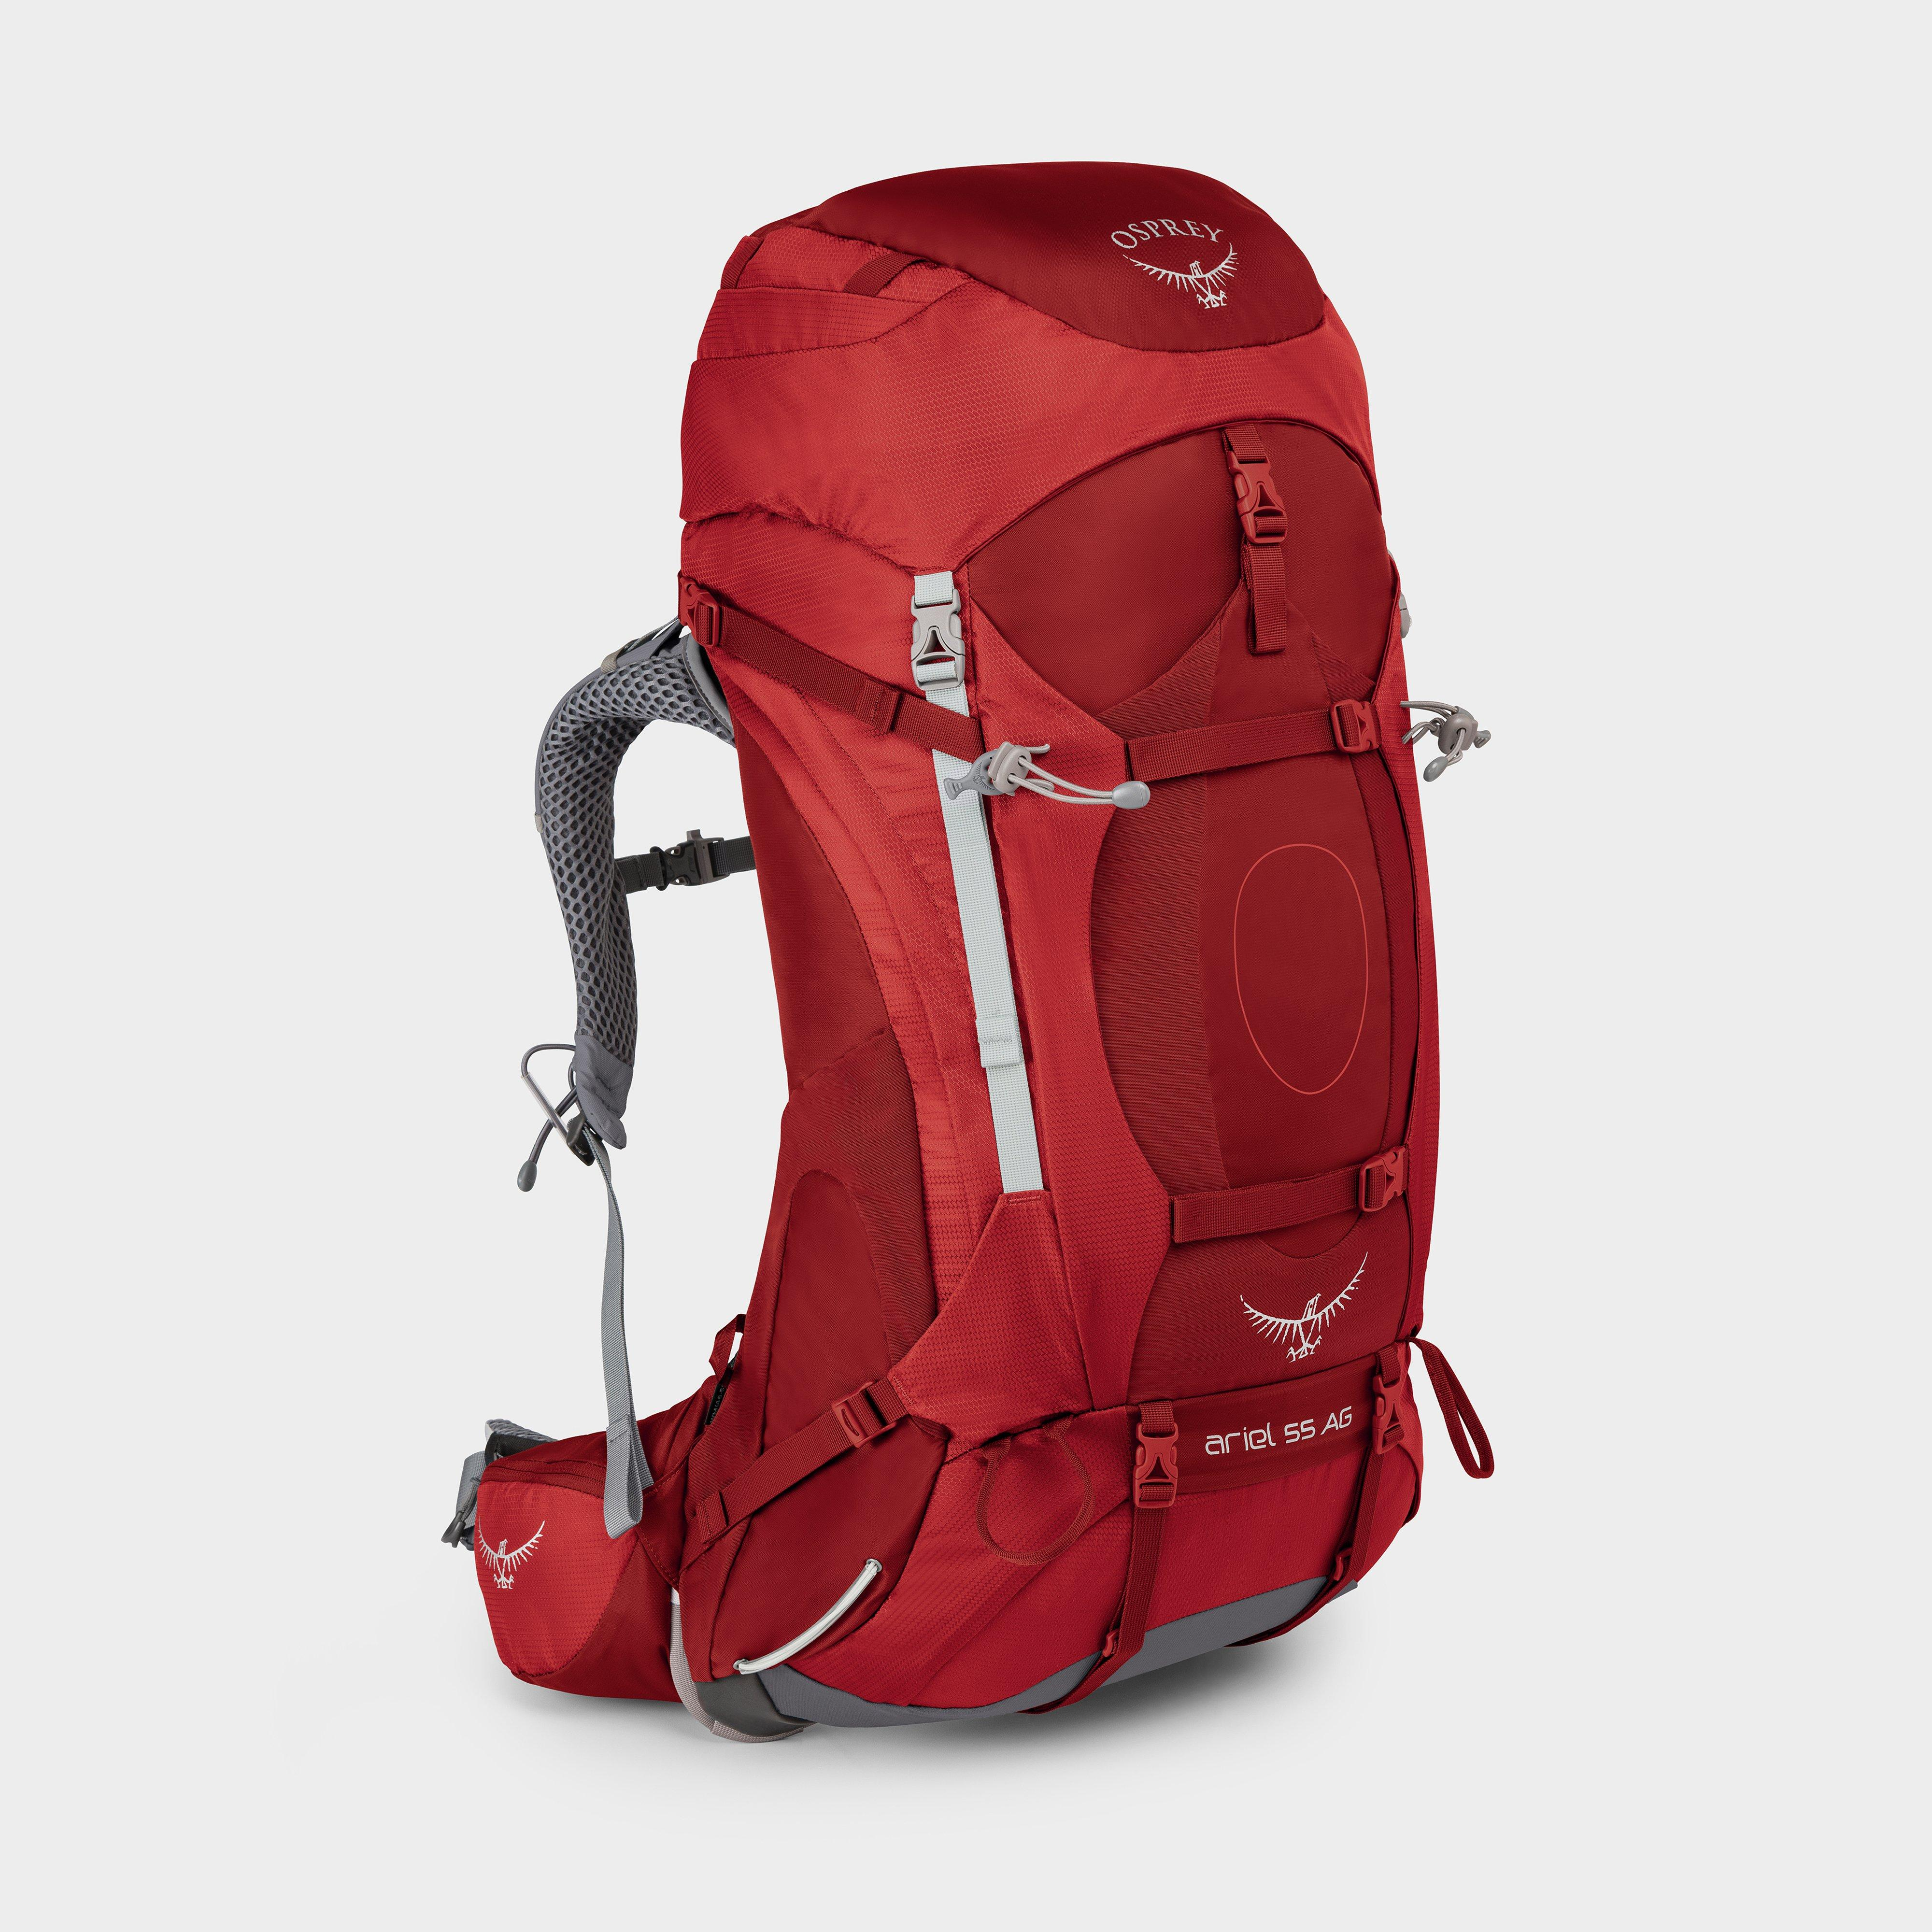 Osprey Ariel Ag 55L Women's Rucksack (Small) - Red/Red, Red